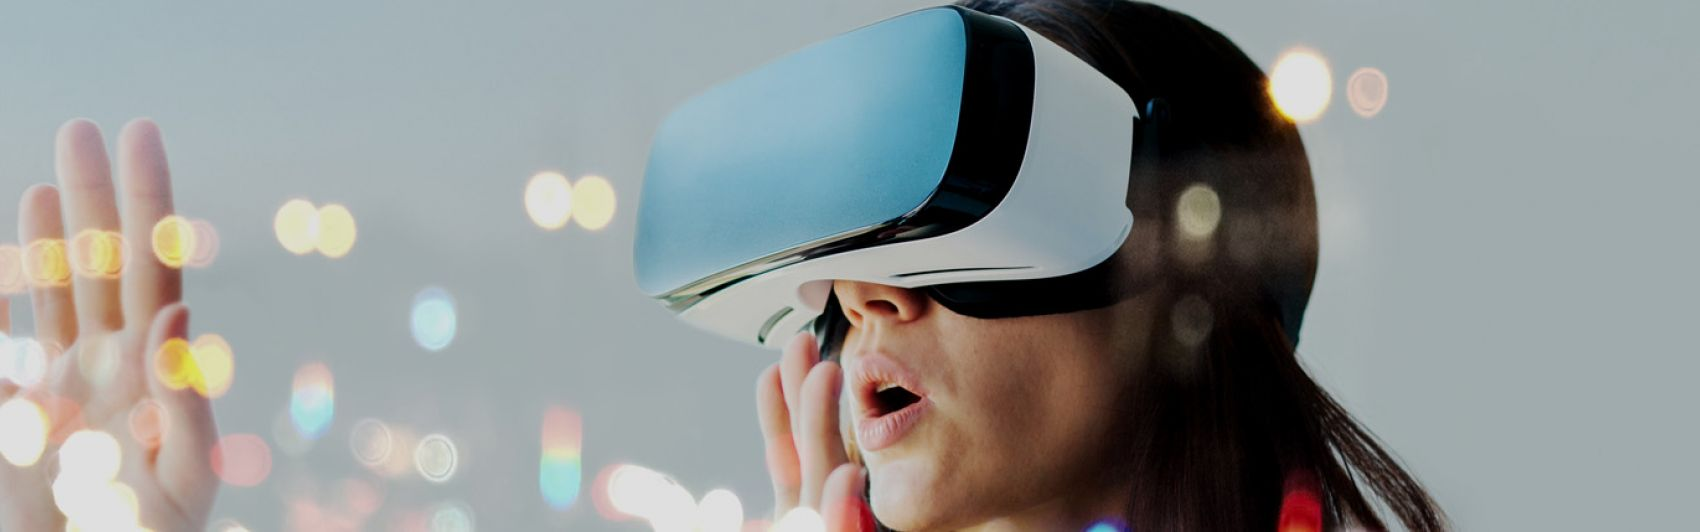 female; vr; future; technology; virtual; reality; glasses; entertainment; digital; device; looking; simulation; innovation; electronic; vision; gaming; futuristic; game; leisure; experience; visual; tech; man; science; person; people; hi-tech; world; play